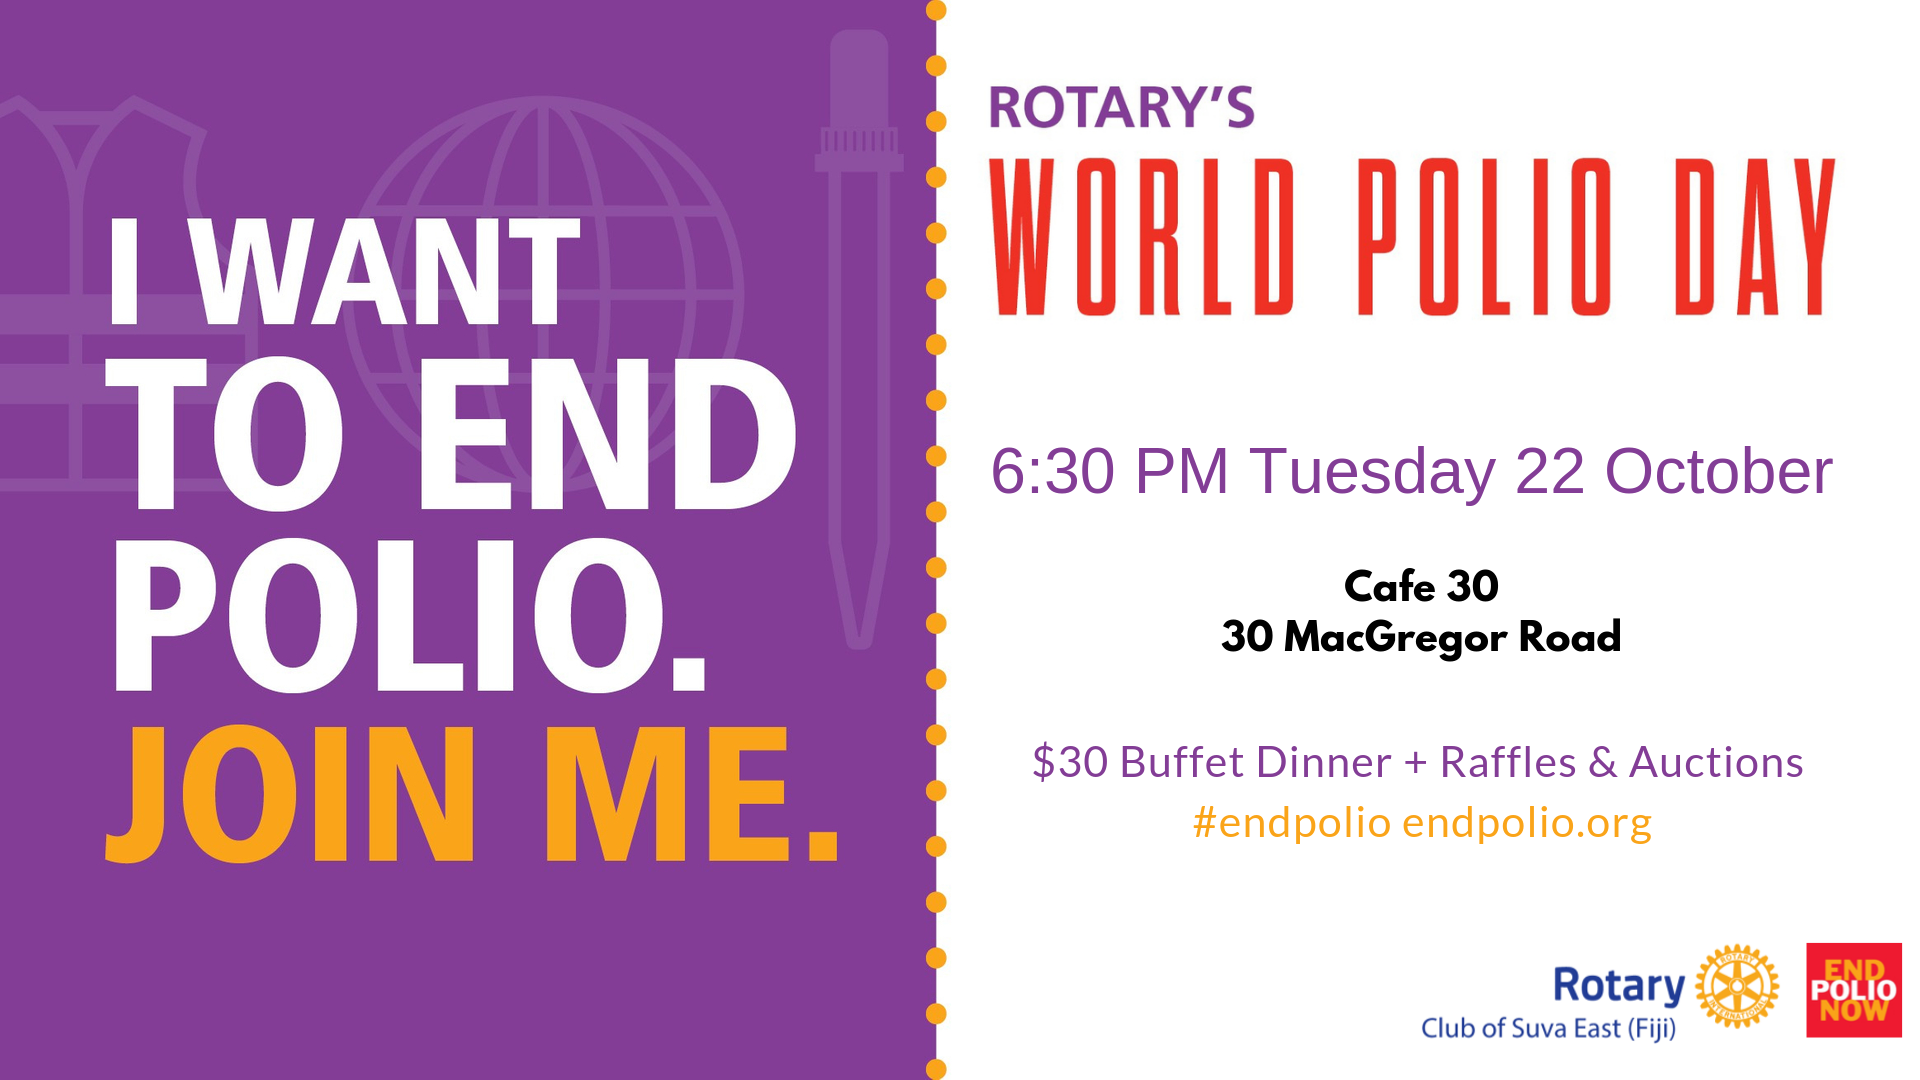 [ RCSE World Polio Day 22 October 6:30 PM @Cafe 30 ]